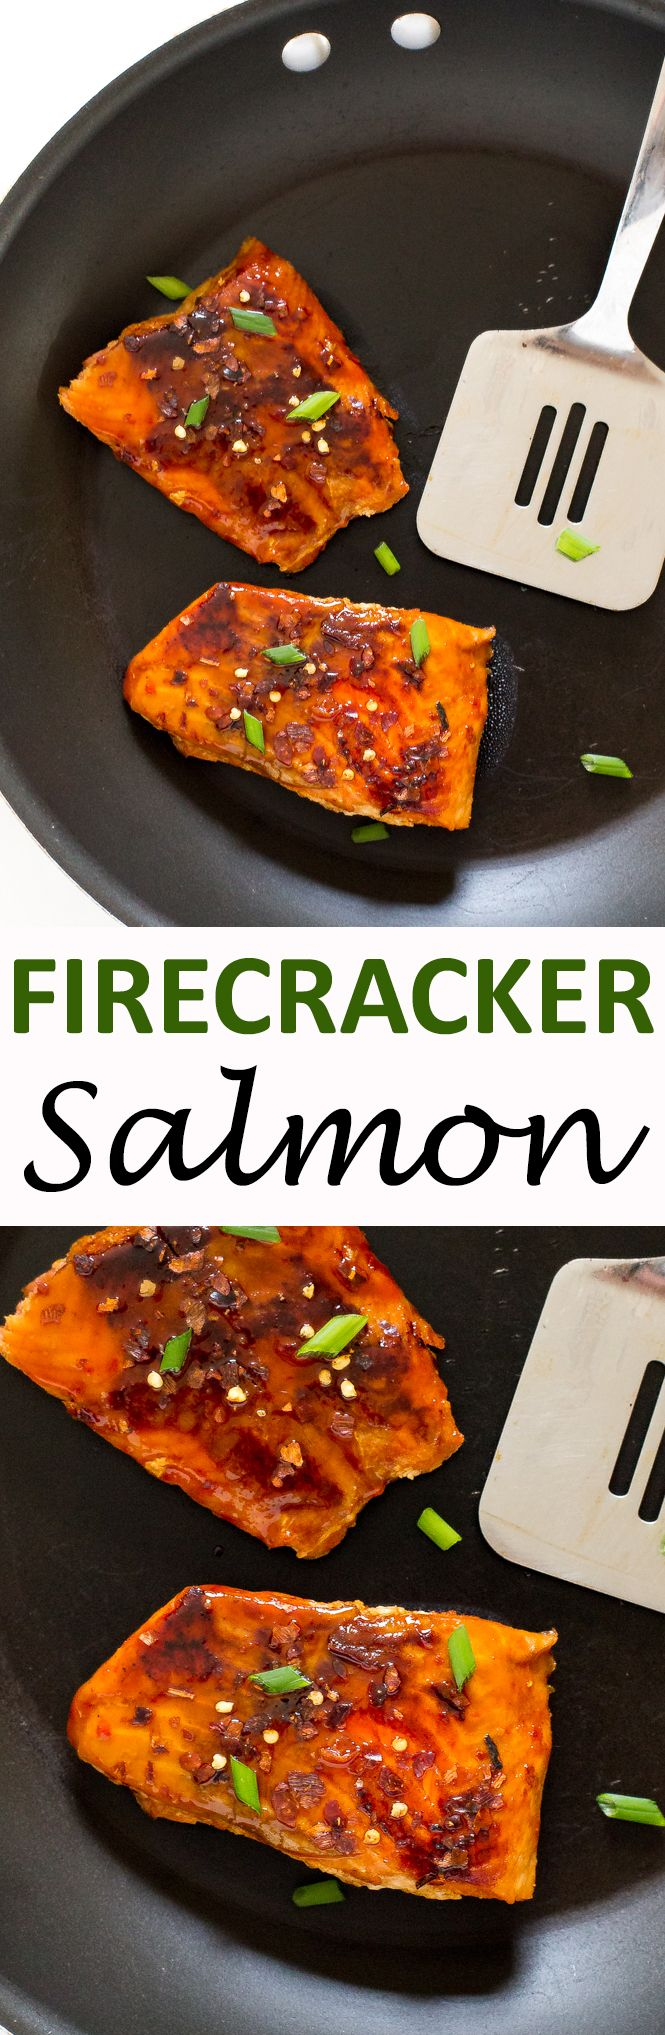 20 Minute Firecracker Salmon. Pan fried salmon topped with a sweet and spicy firecracker sauce. A quick and easy weeknight meal! | chefsavvy.com #recipe #firecracker #salmon #seafood #dinner